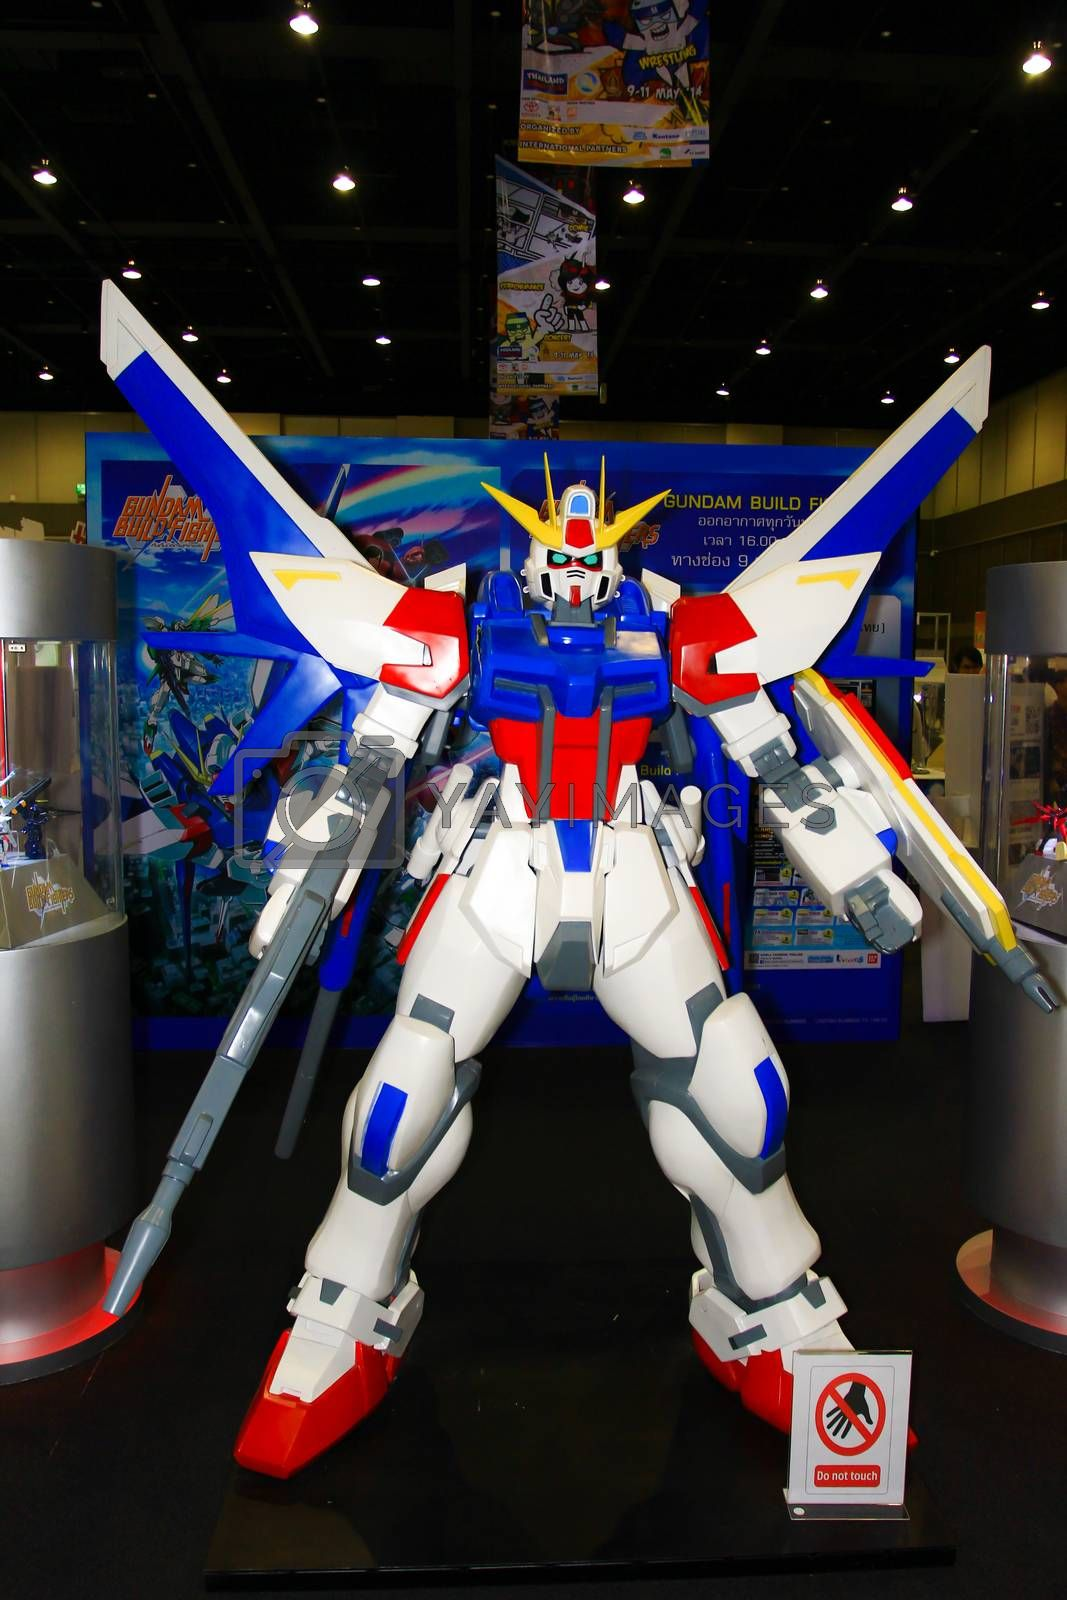 Royalty free image of A model of the character Gundam from the movies and comics 16 by redthirteen